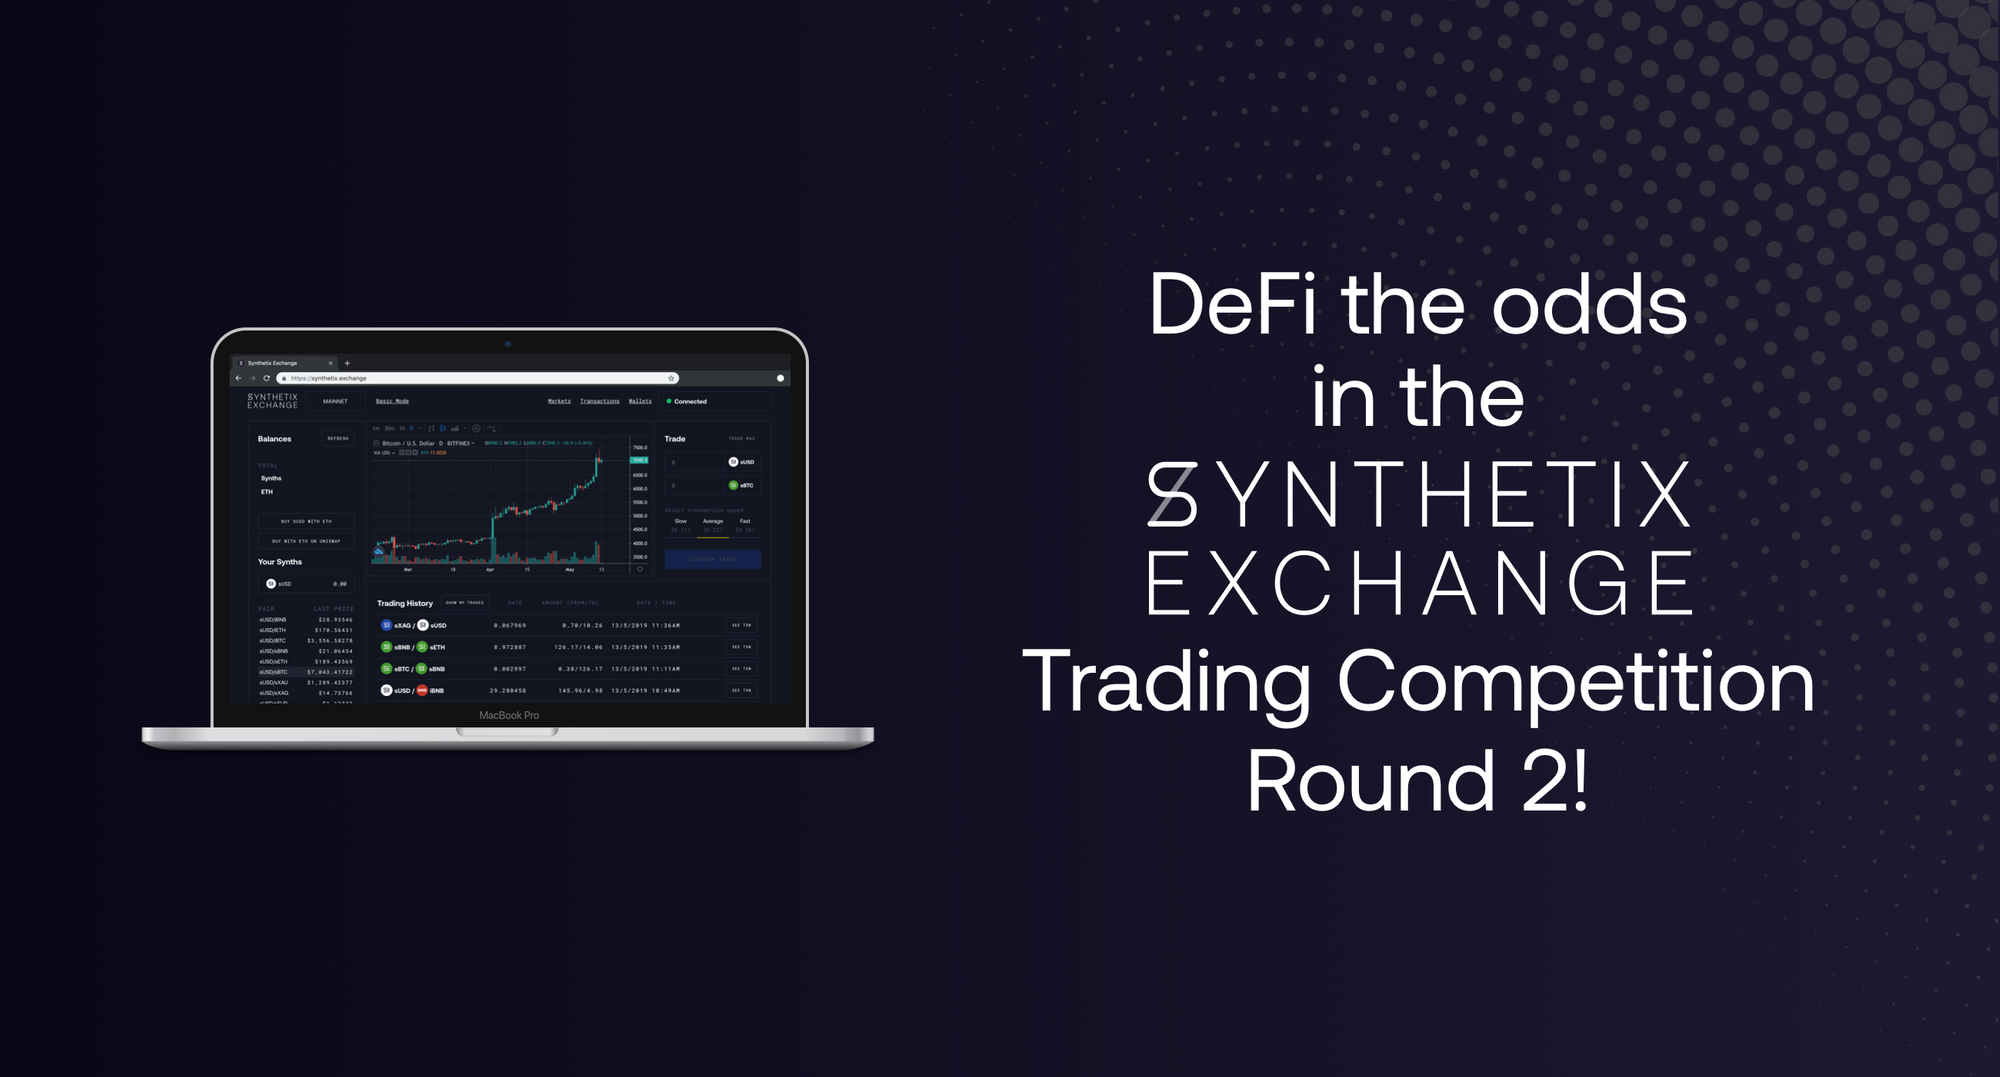 Synthetix.Exchange Trading Competition Round 2